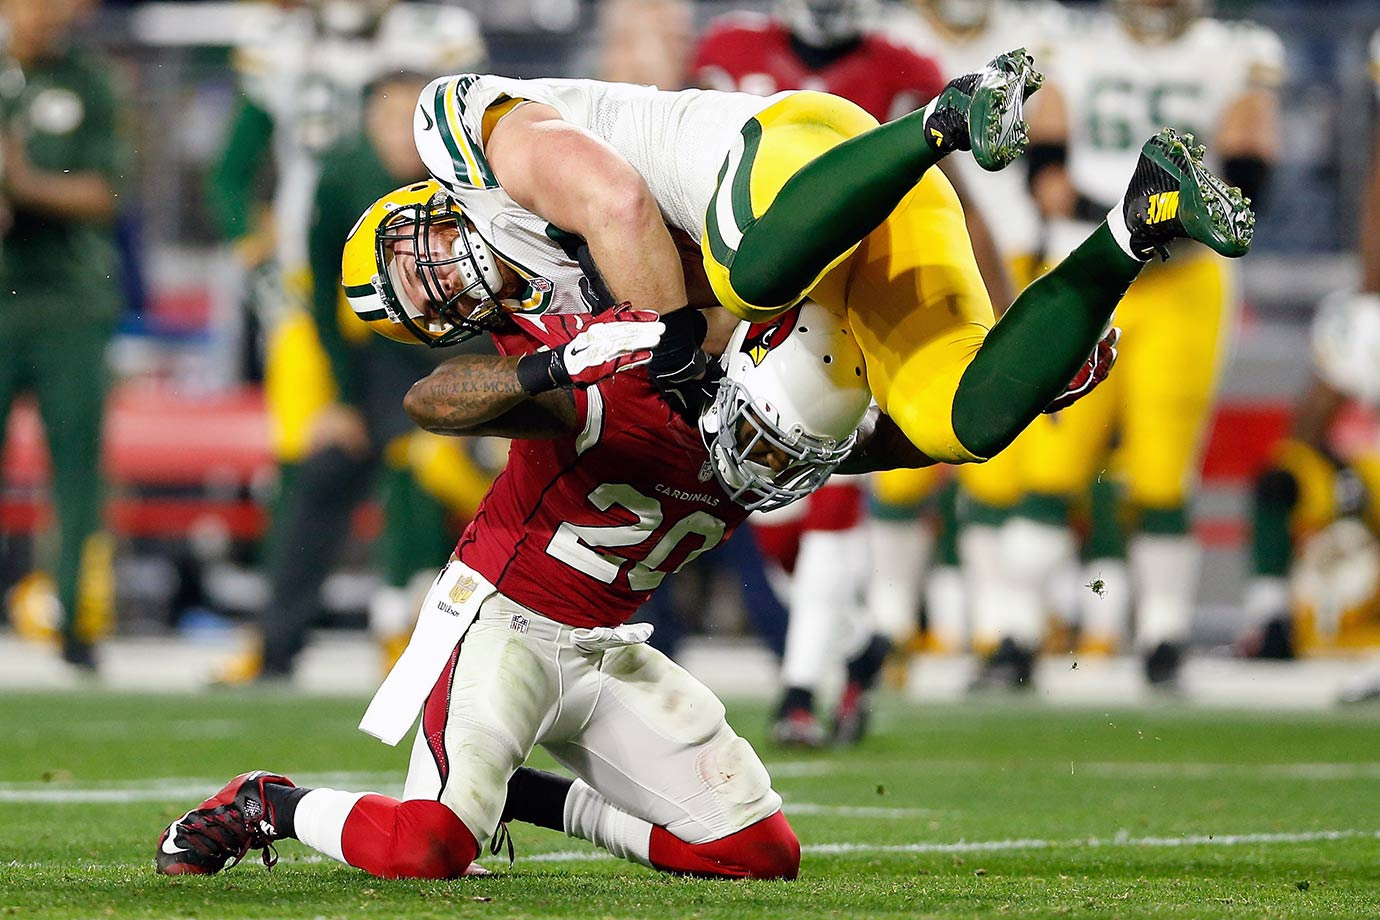 Arizona Cardinals safety Deone Bucannon appears to flip Green Bay Packers fullback John Kuhn over.